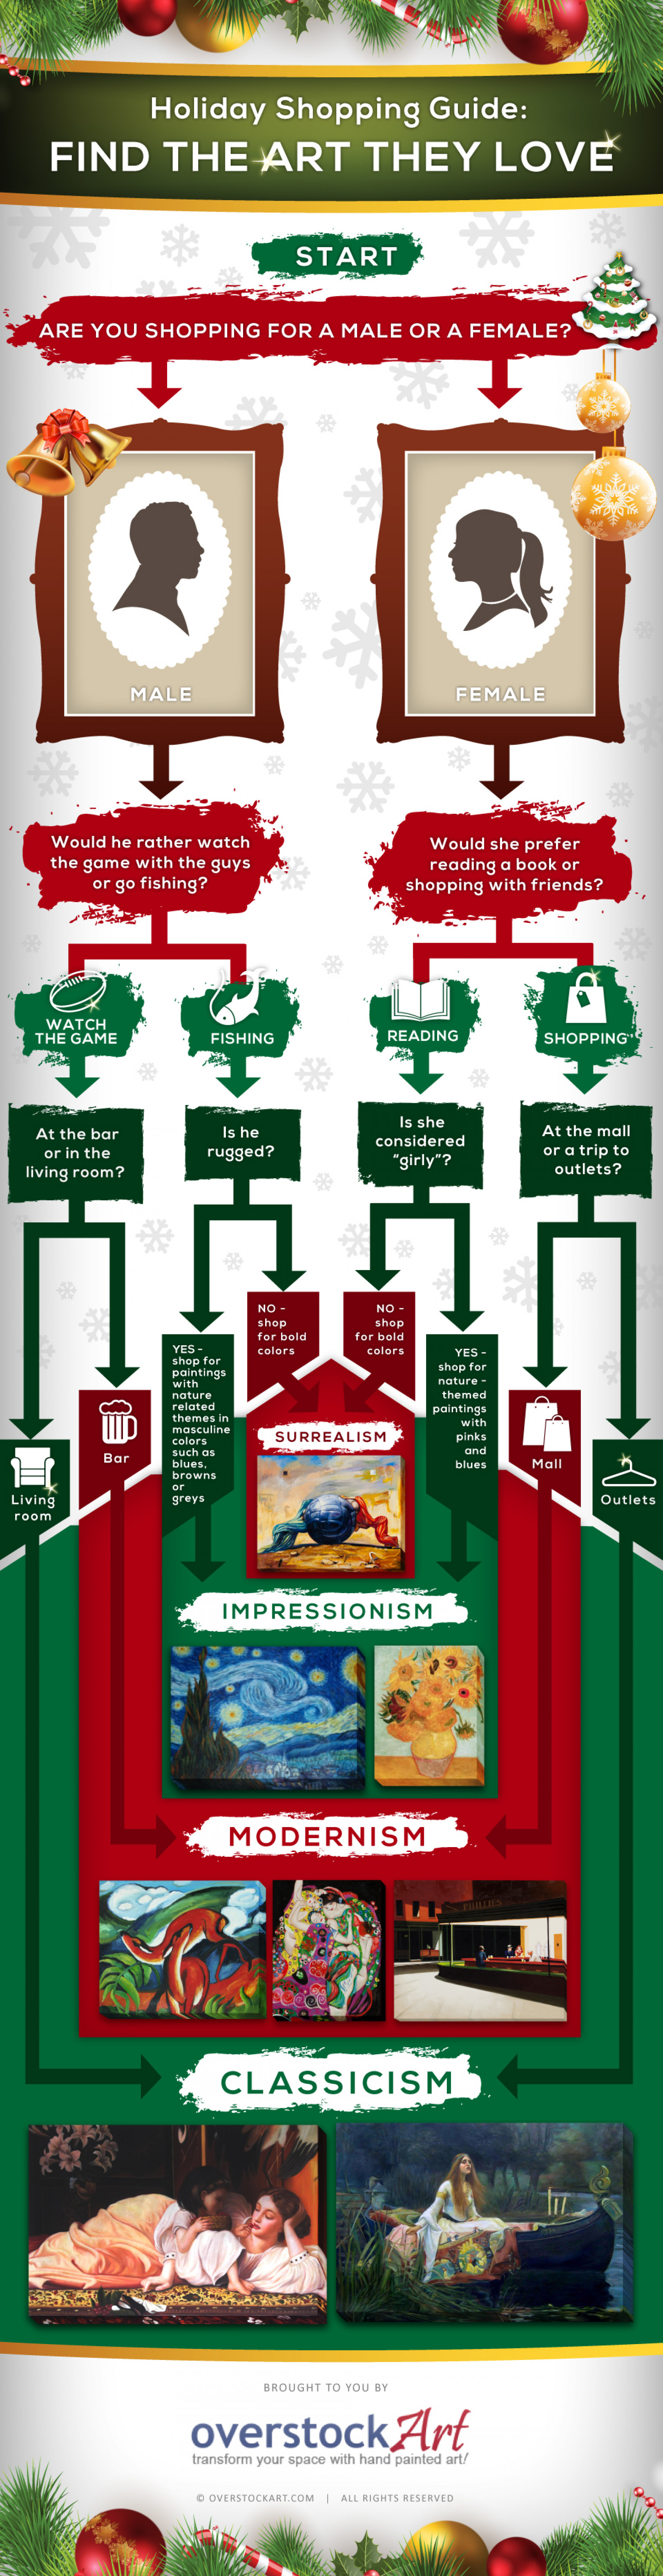 FIND THE PERFECT ART PIECE FOR EVERYONE ON YOUR HOLIDAY LIST Infographic